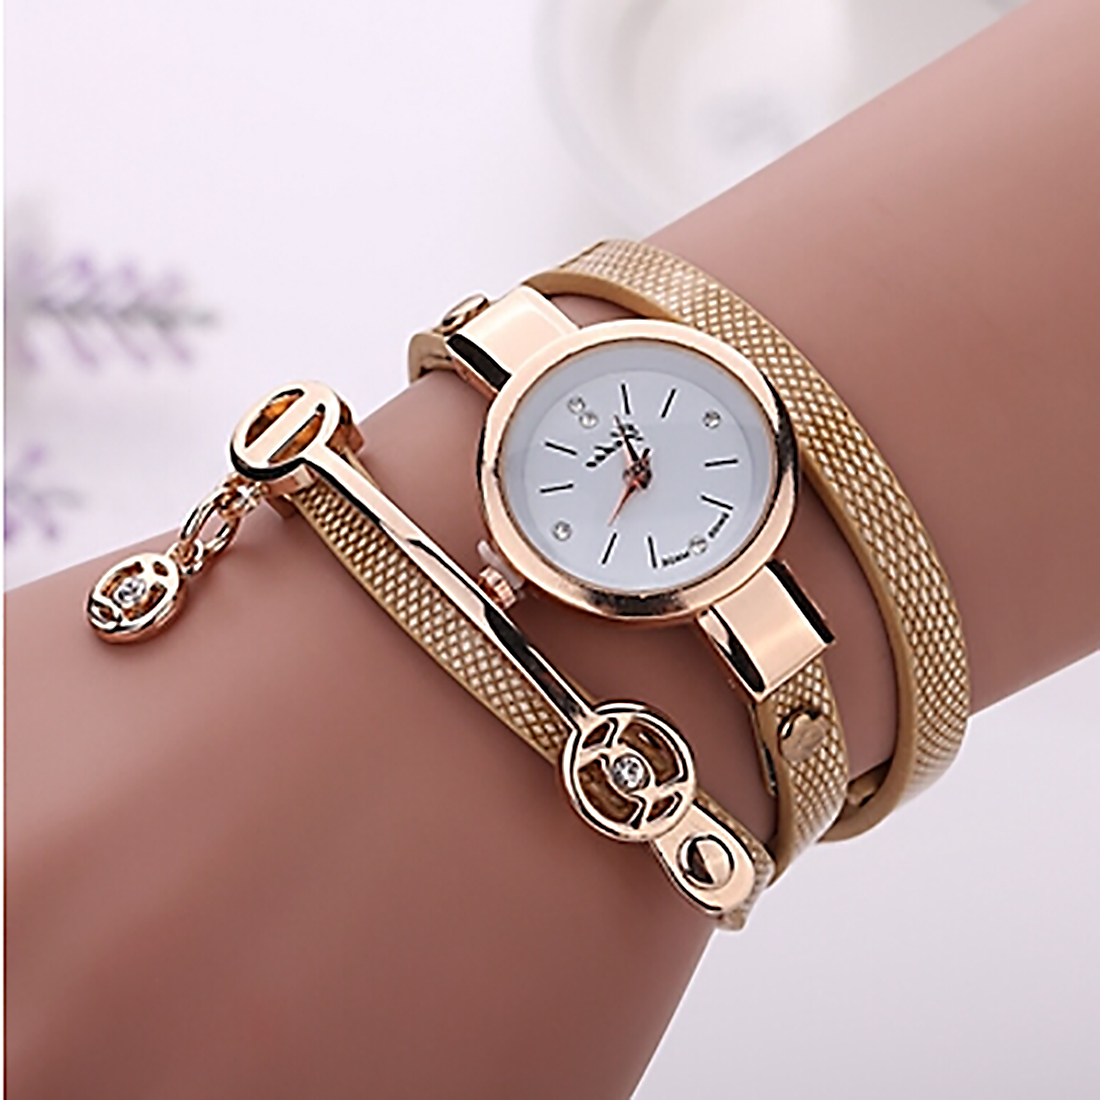 Lady Wristwatches New Fashion Summer Style Watch Leather Casual Bracelet Watch Wristwatch Women Watches Montre Femme Watch все цены